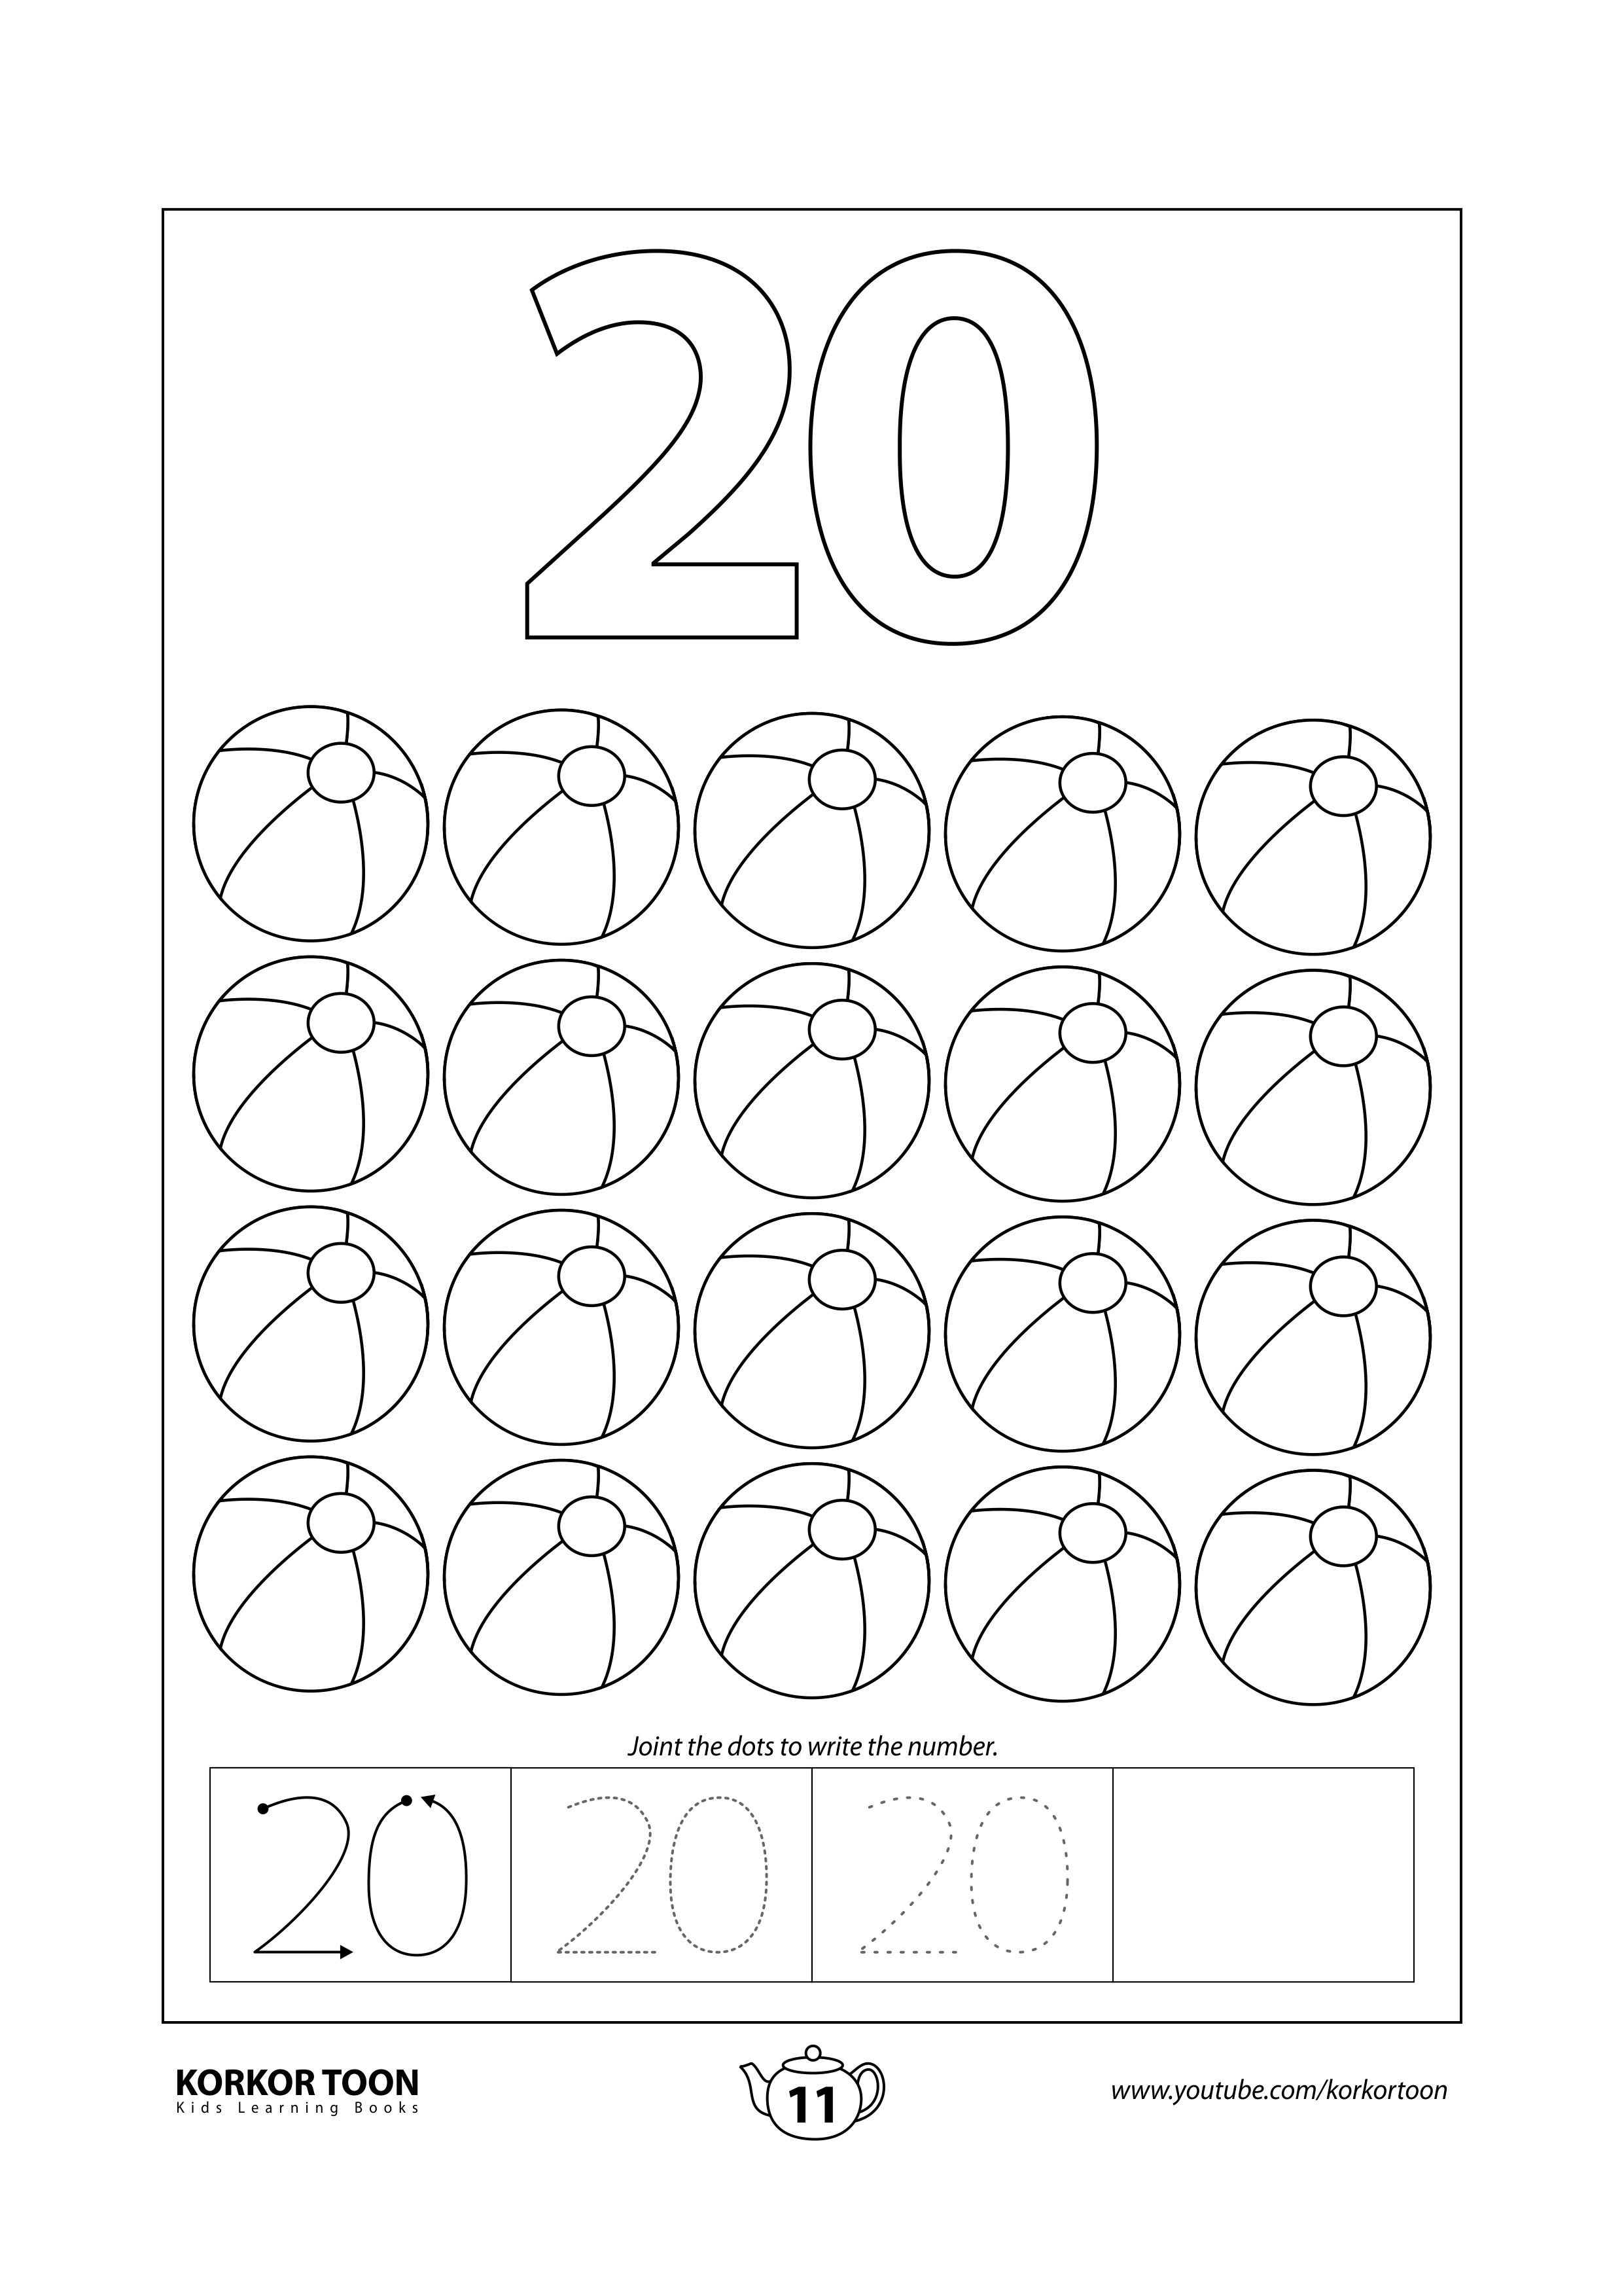 Numbers Coloring Book For Kids Number 20 Coloring Books Kids Coloring Books Printables Free Kids